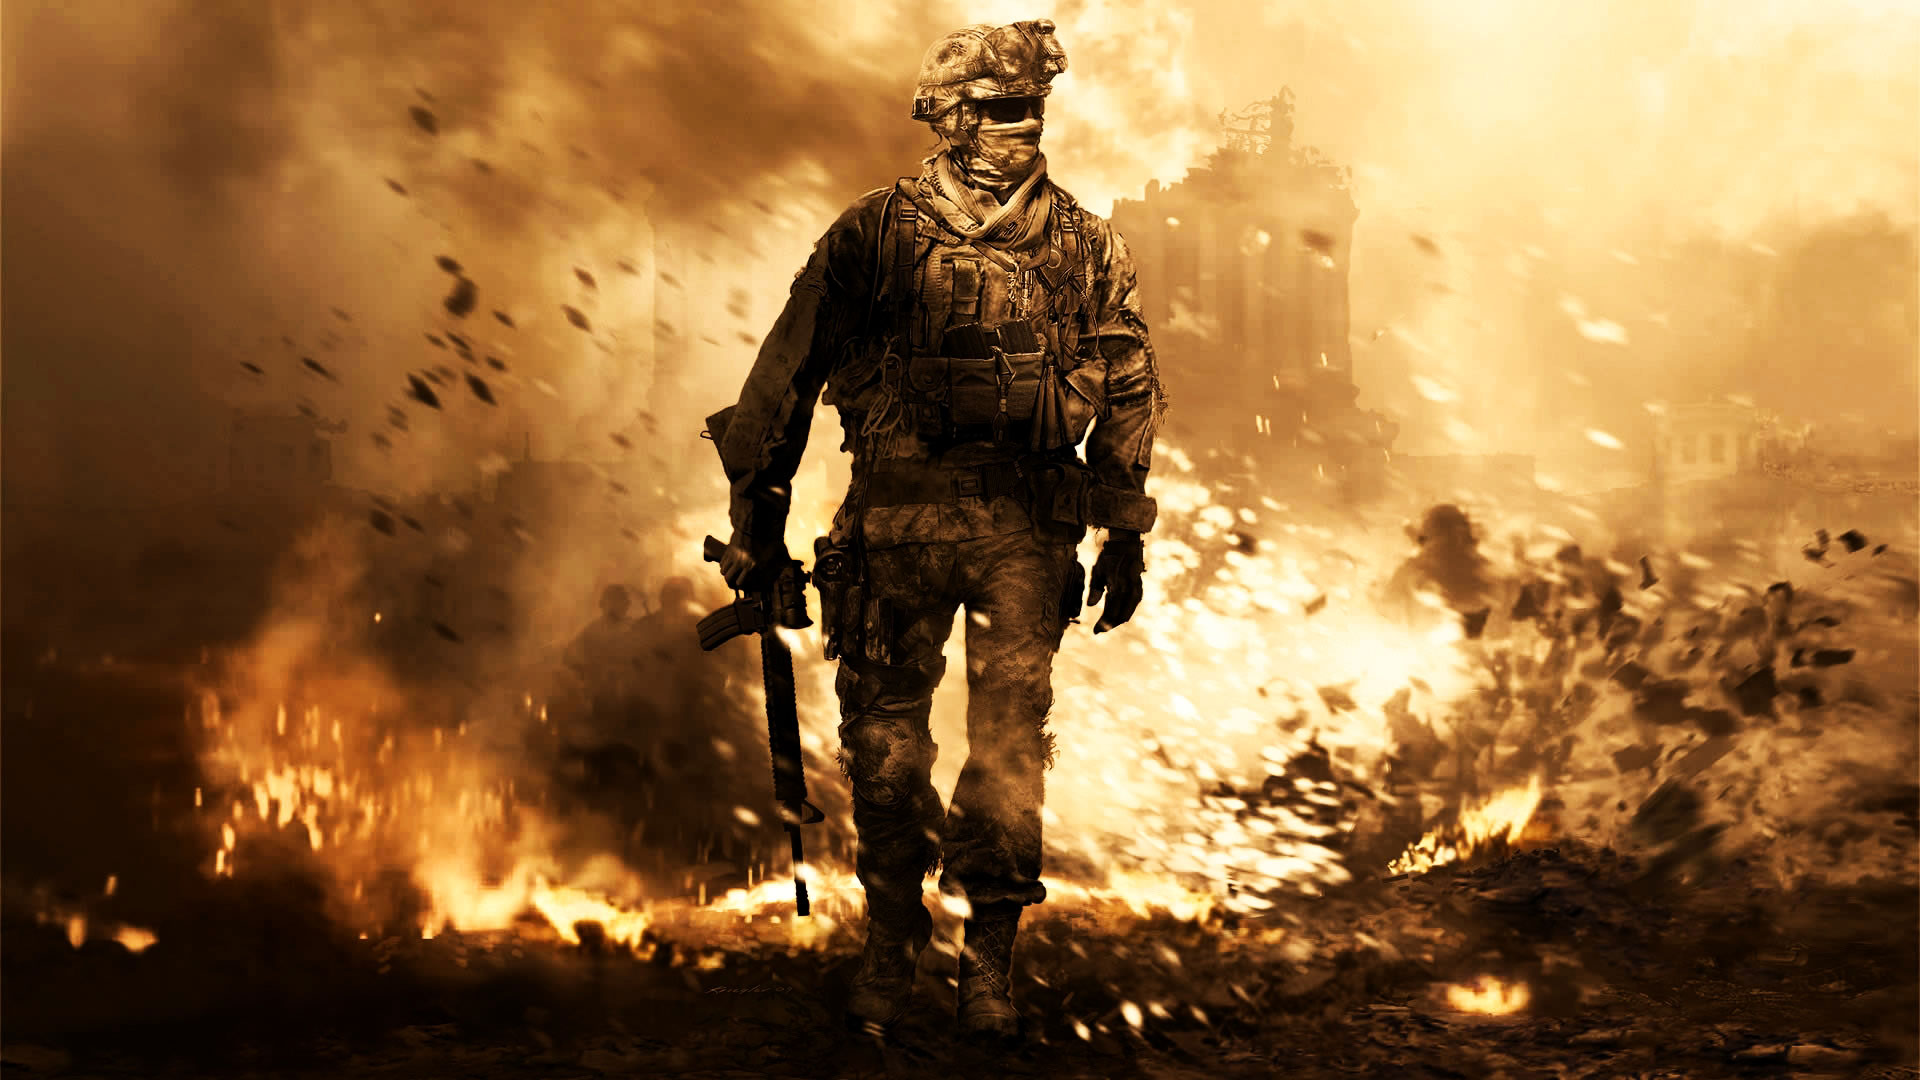 Modernwarfare Vietnam War Widescreen Wallpaper Full HD Wallpapers 1920x1080